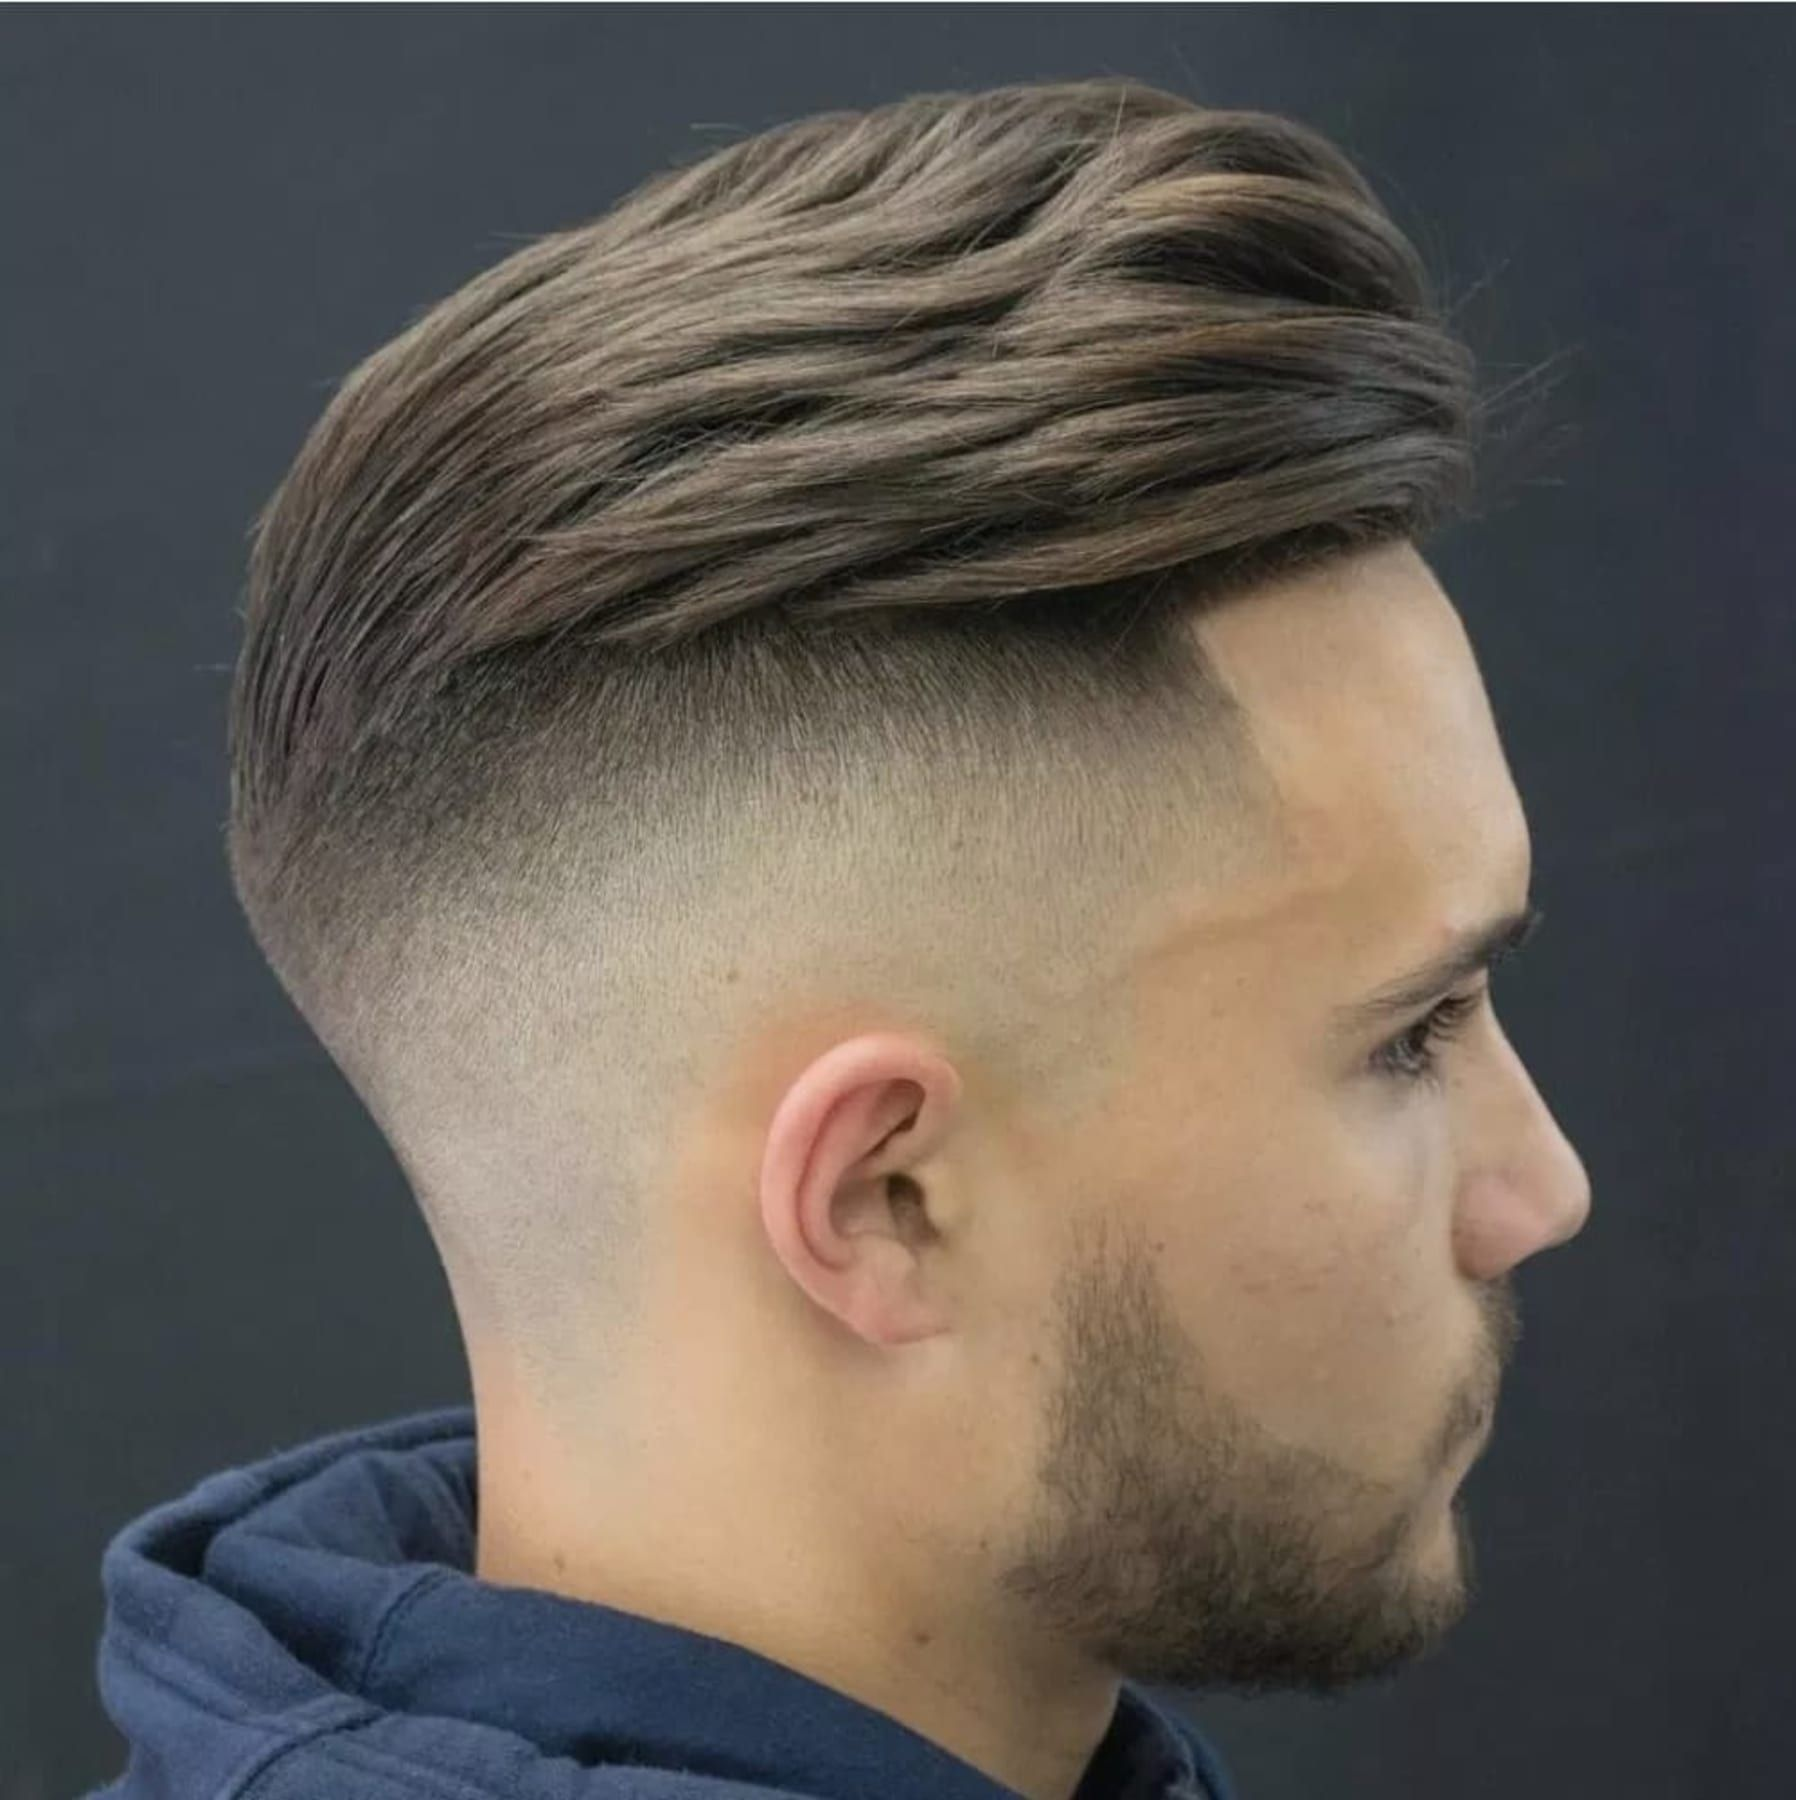 Best High Fade Haircut Styles in 2019